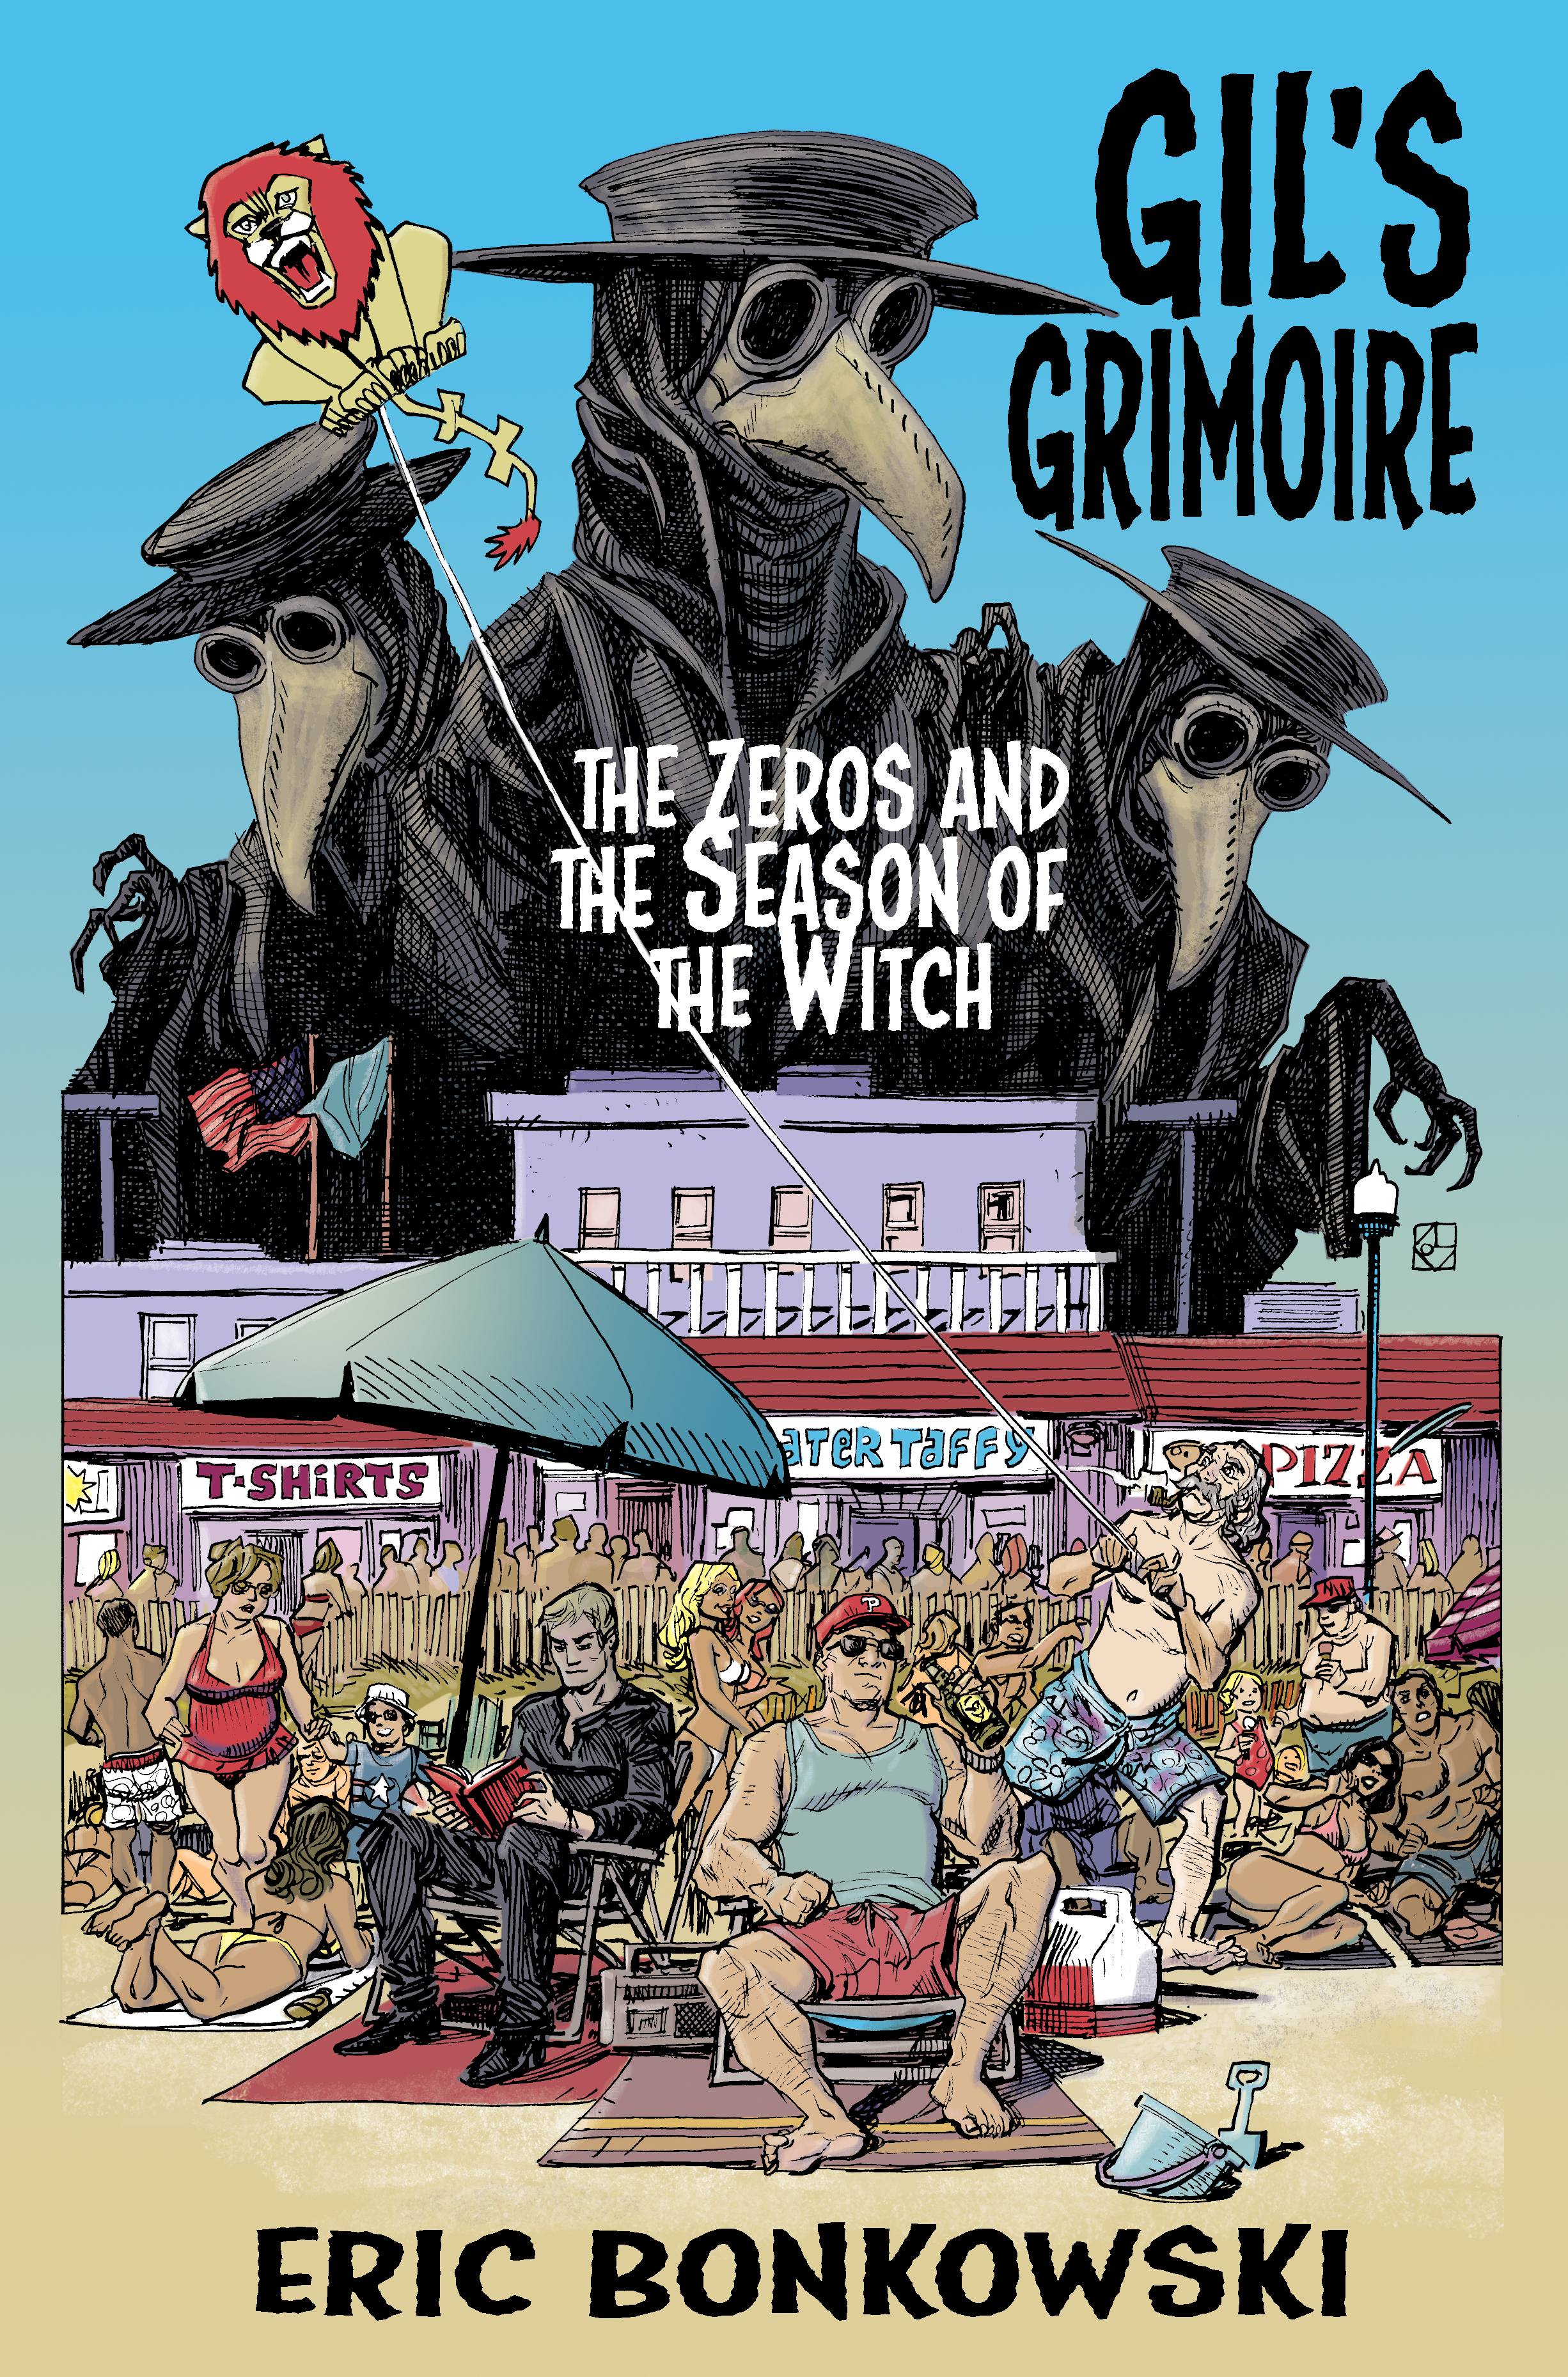 The Zeros and The Season of the Witch